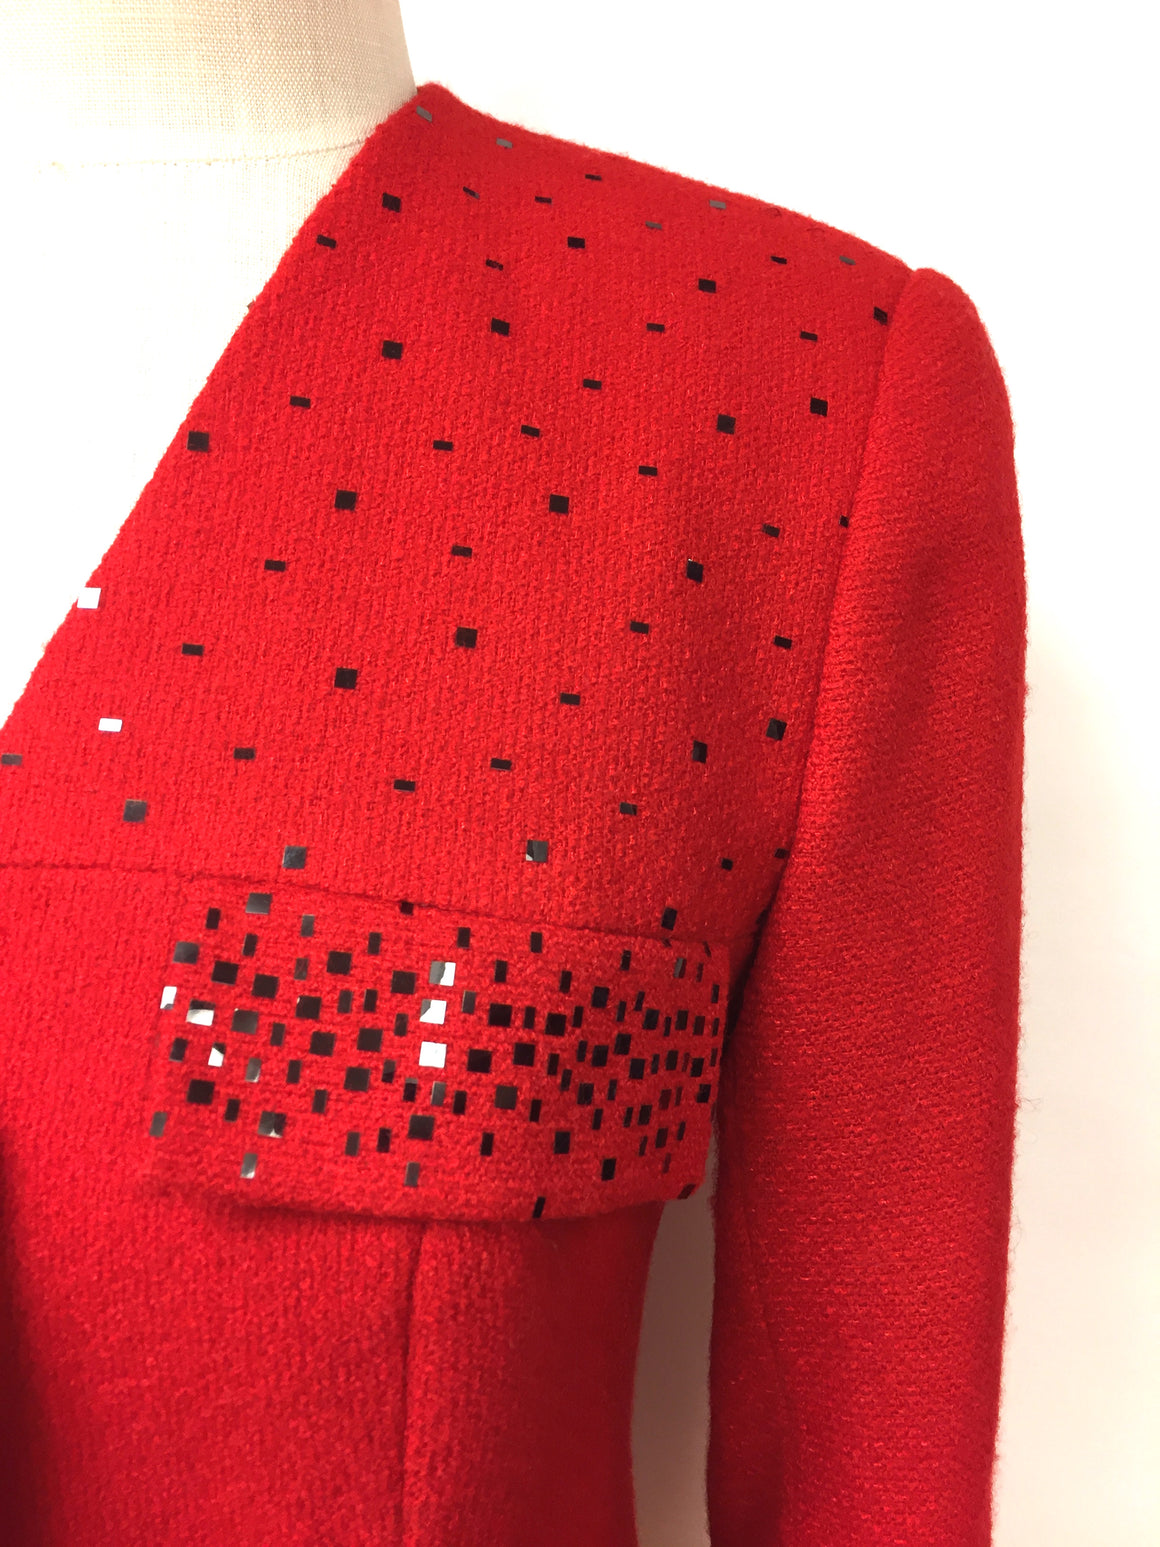 KOOS VANDEN AKKER Couture Vintage  Red Wool Black Sequined Accents V-Neck Jacket  Size: Small